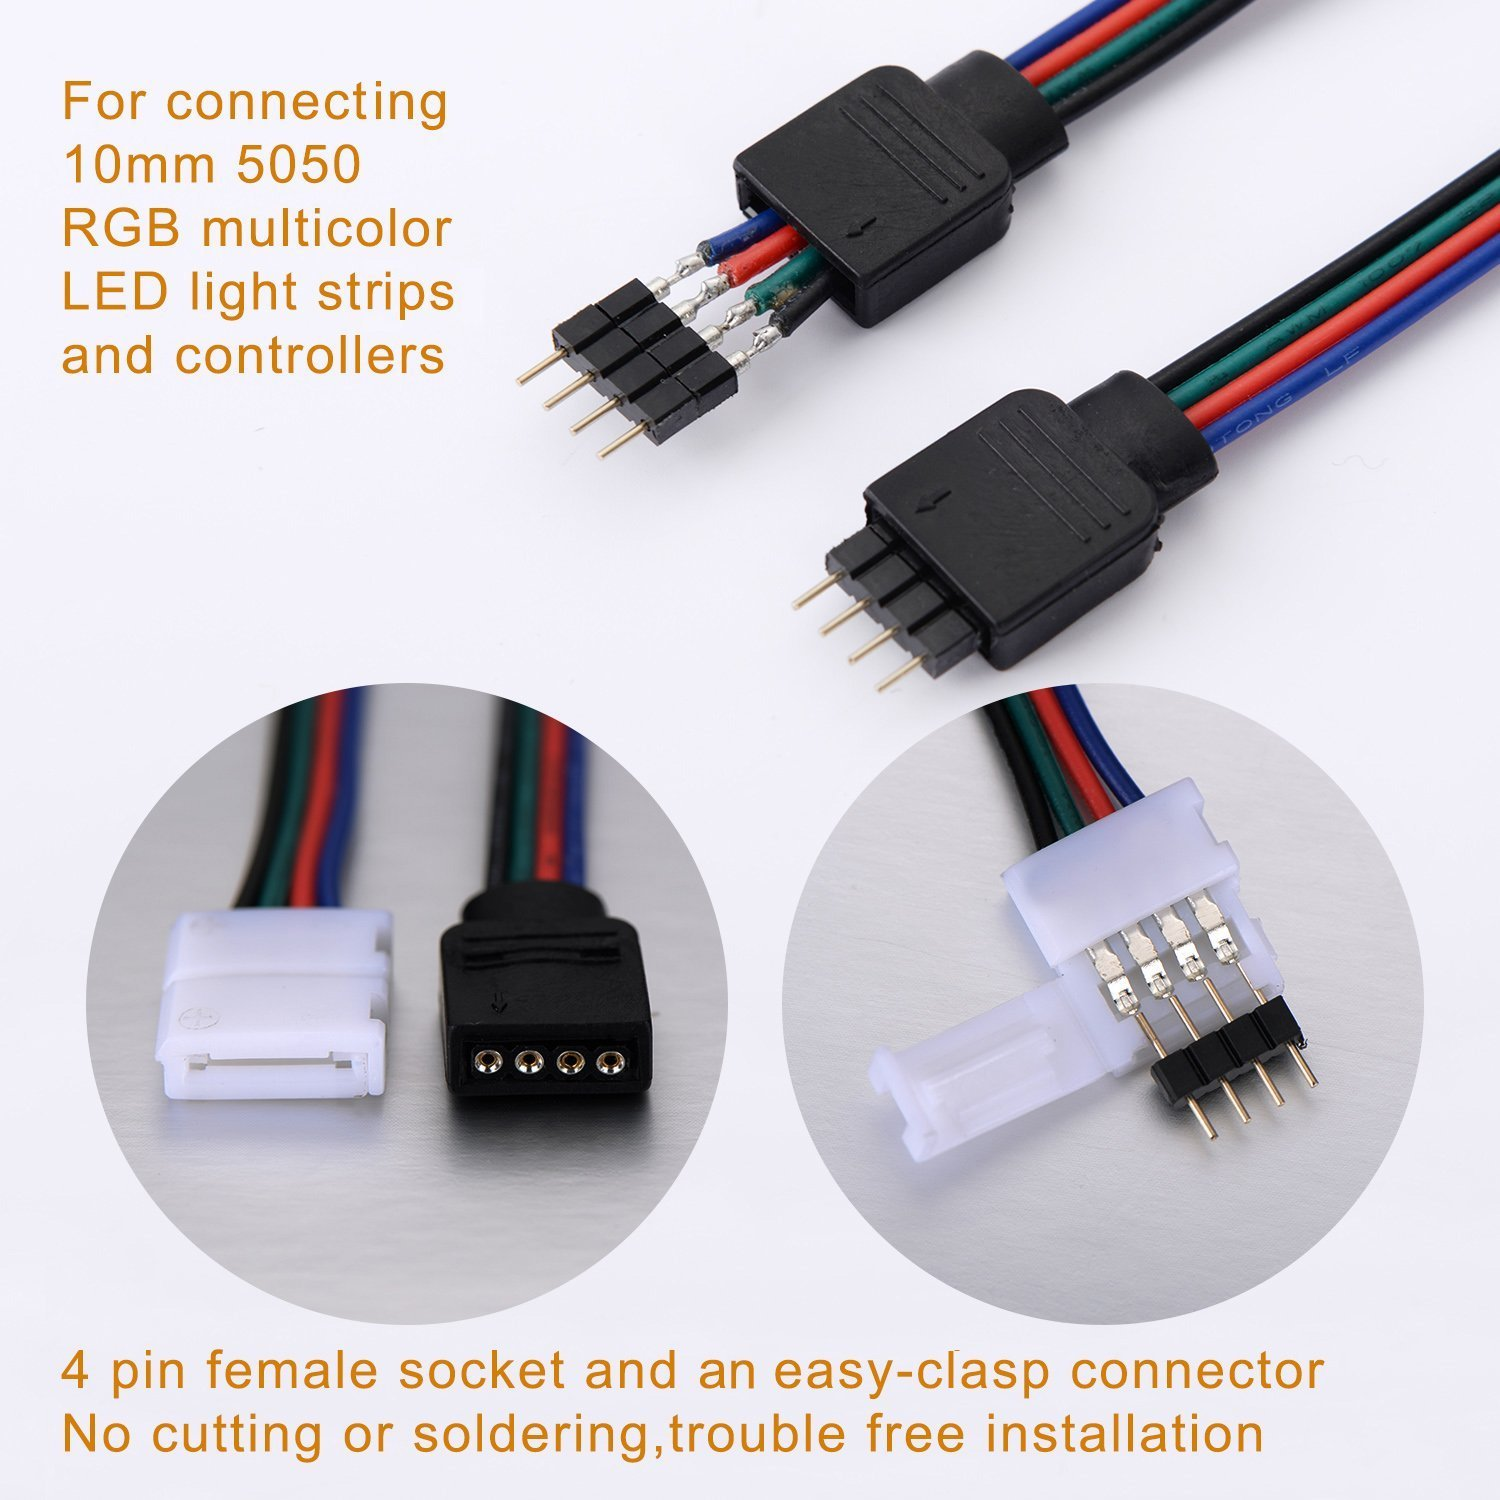 164ft5m 4 pin rgb led strip extension cable led strips 164ft5m 4 pin rgb led strip extension cable led strips connectors kits with 4 strip jumpers l shape connecters for 5050 flexible rgb led strip light aloadofball Images